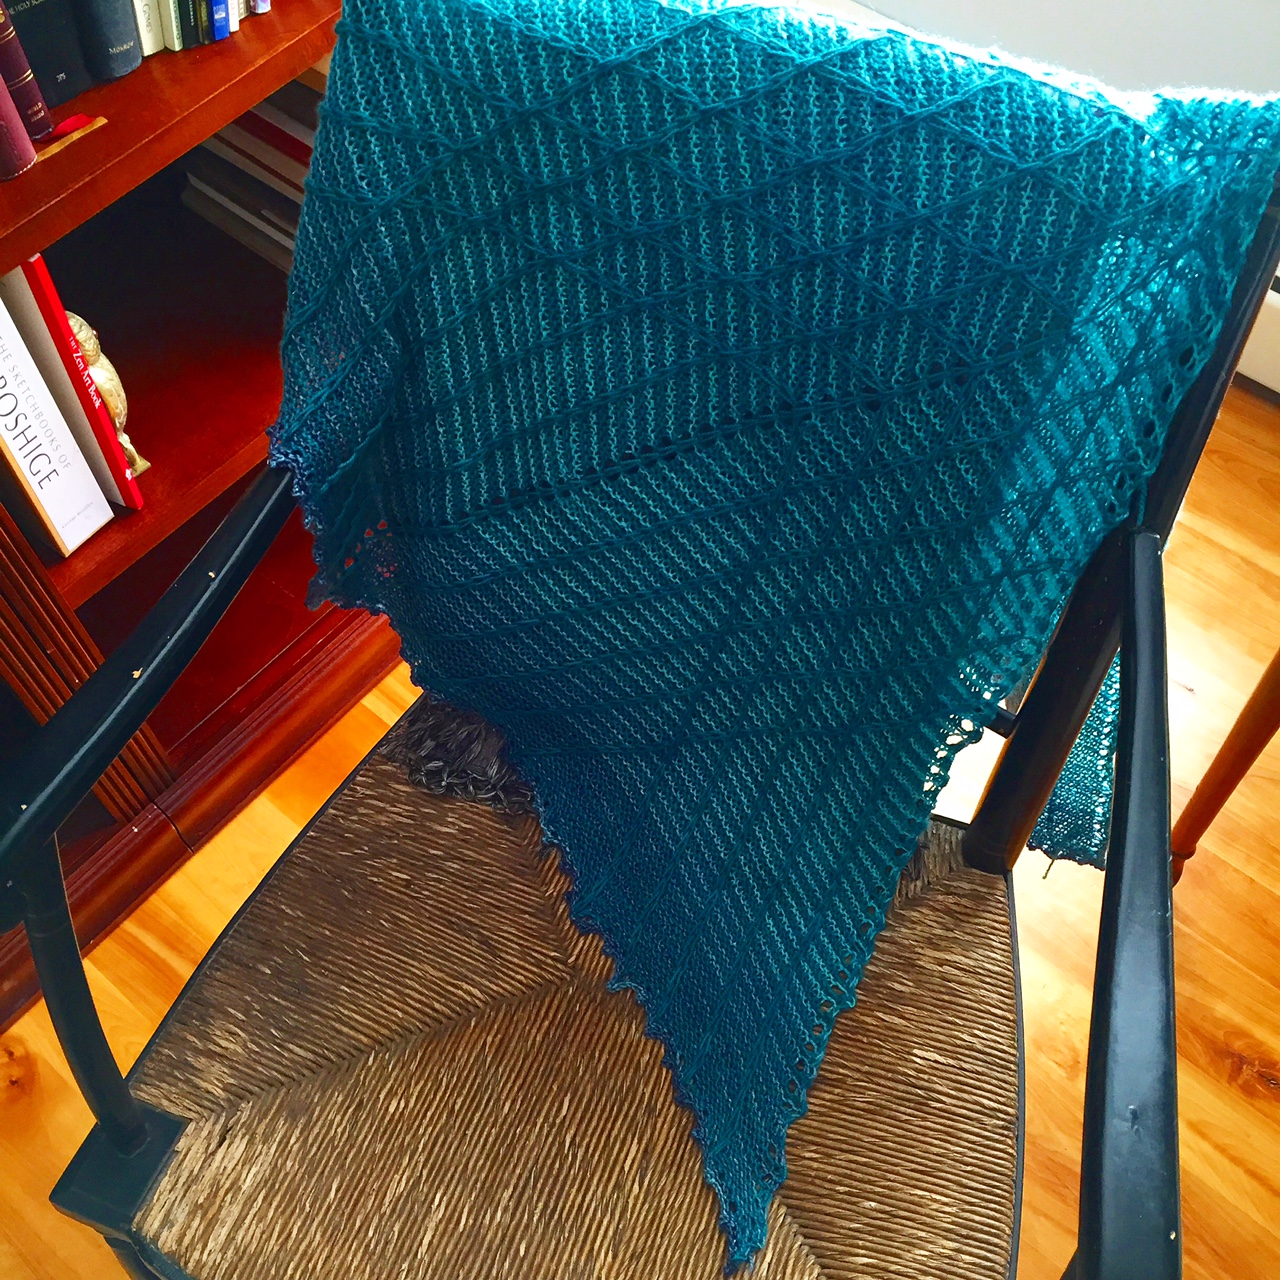 Rachel's Lambton Panes shawl is finished and glorious!